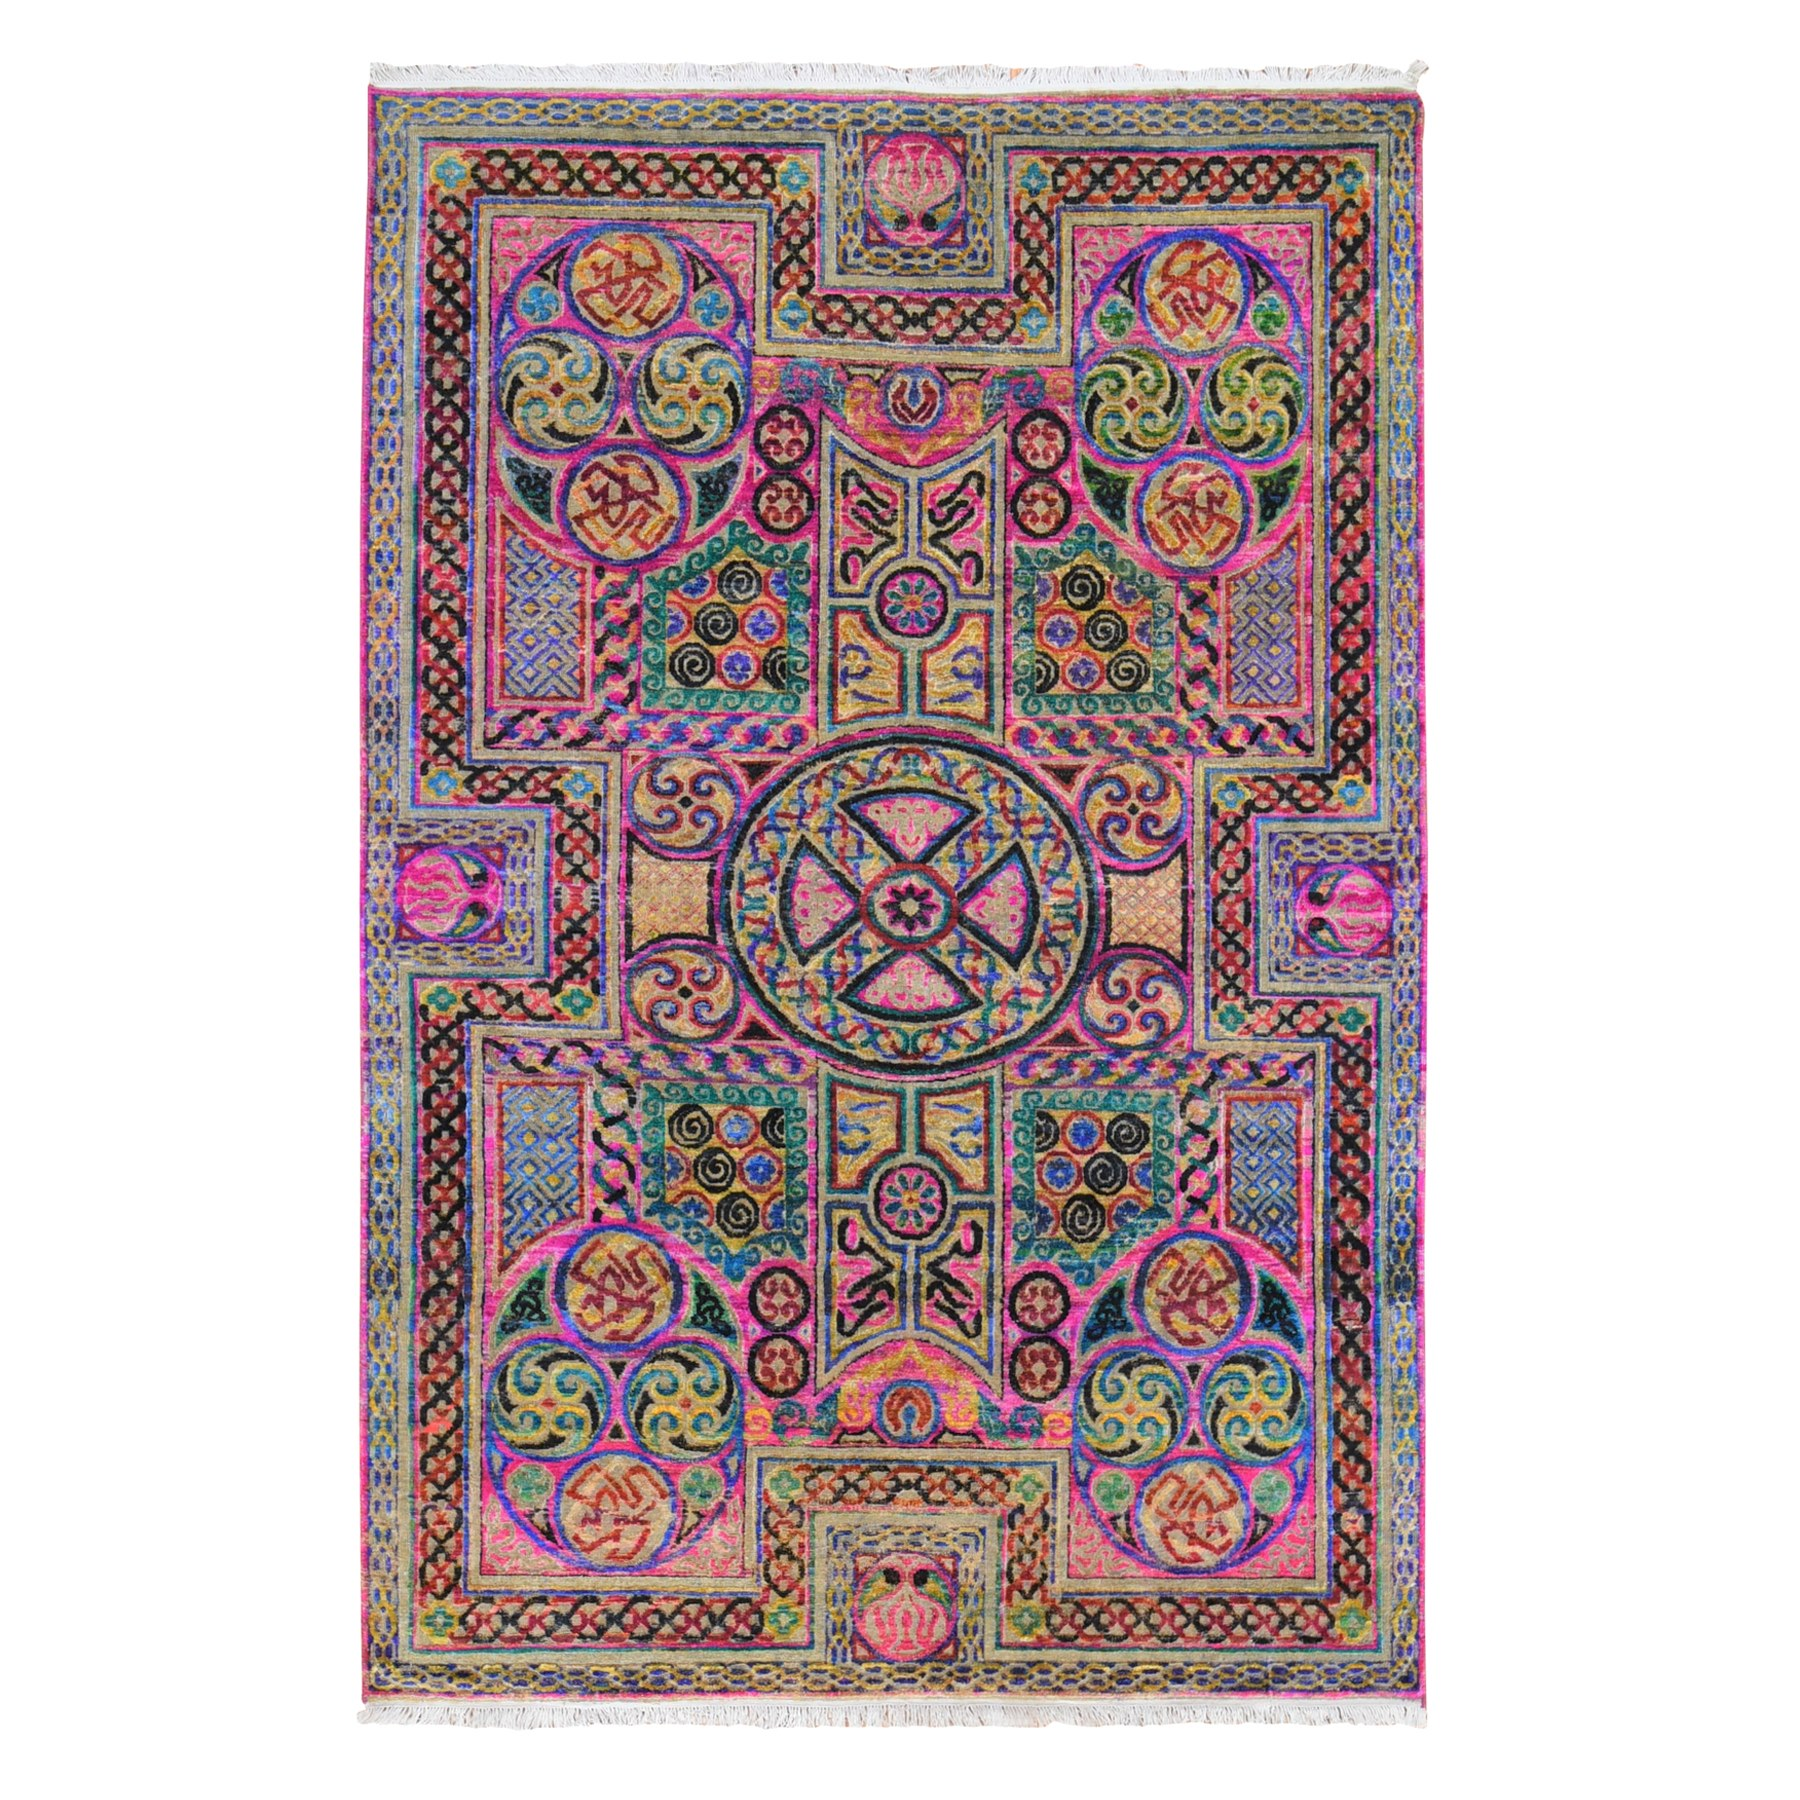 "6'x9'2"" Pink Sari Silk Arts and Crafts Design Hand Knotted Colorful Oriental Rug"